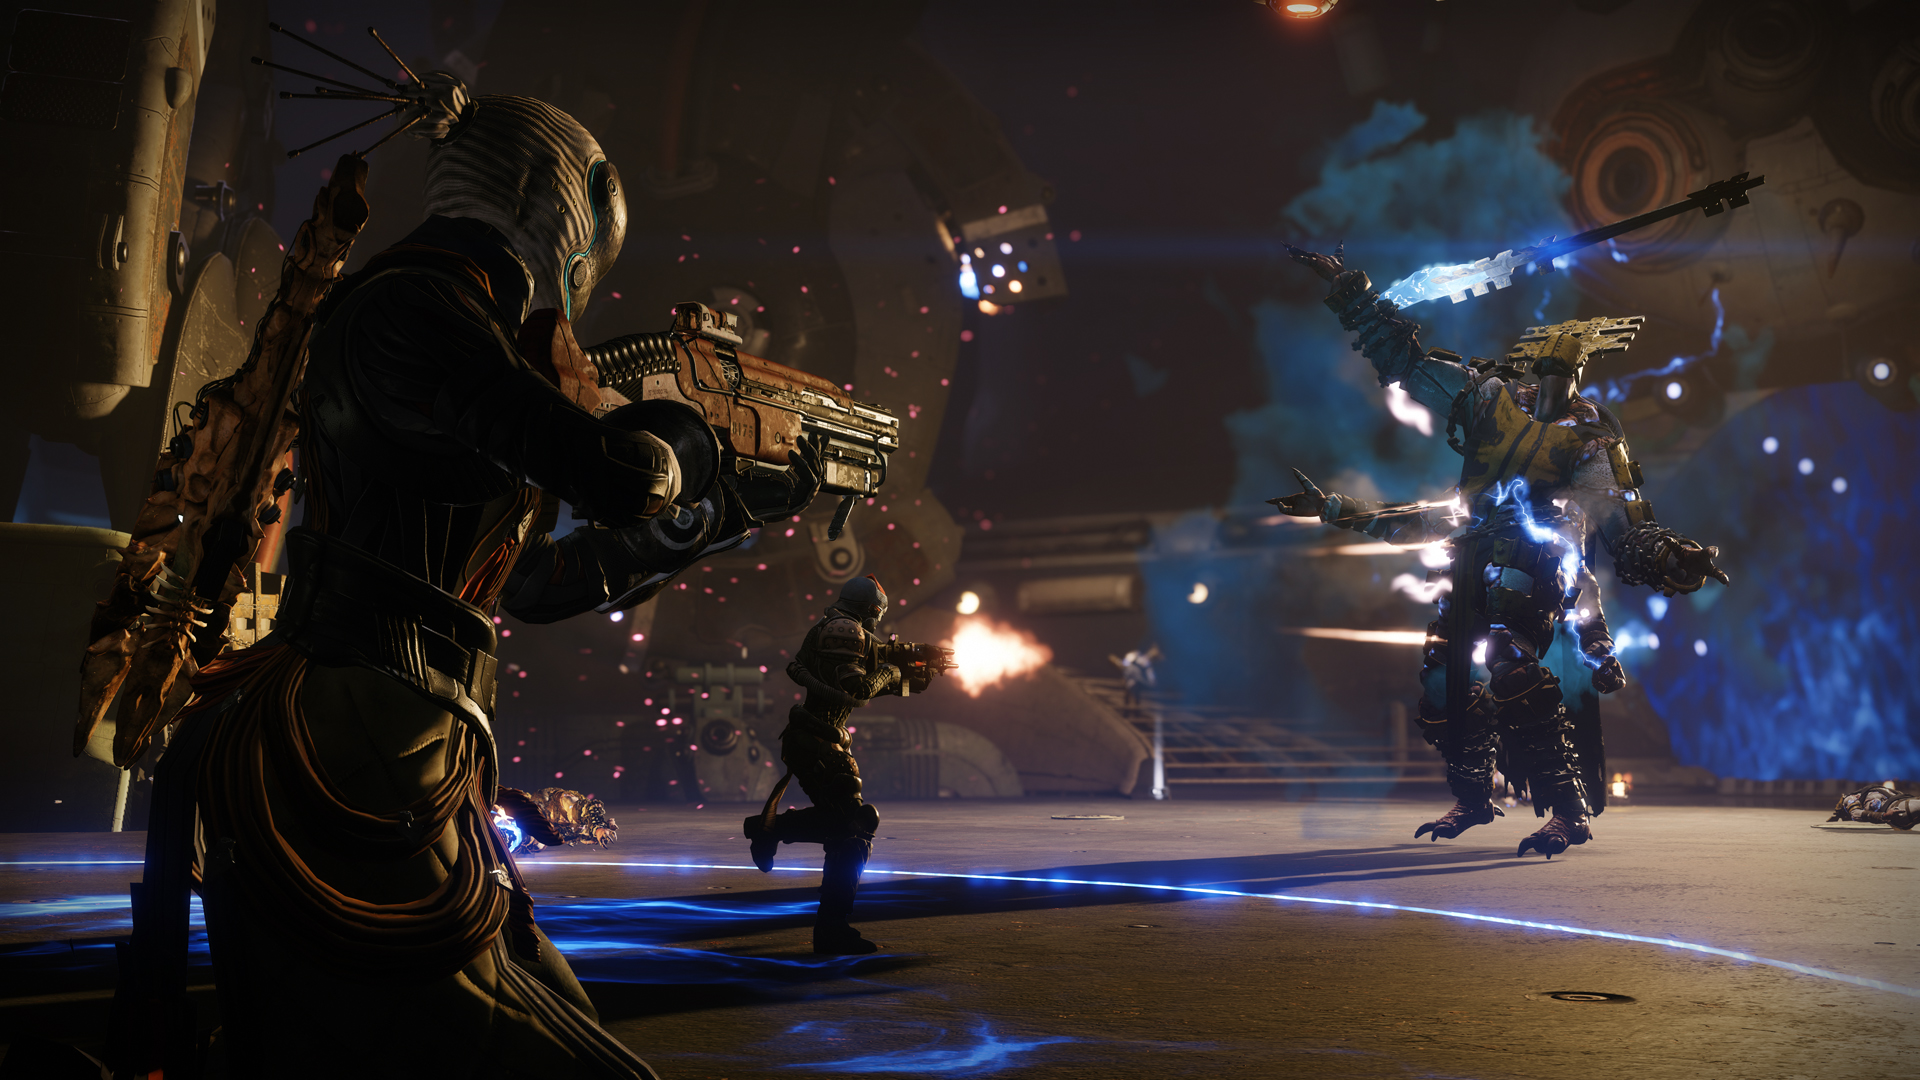 Destiny 2: How to Find the Lord of Wolves Exotic Shotgun in